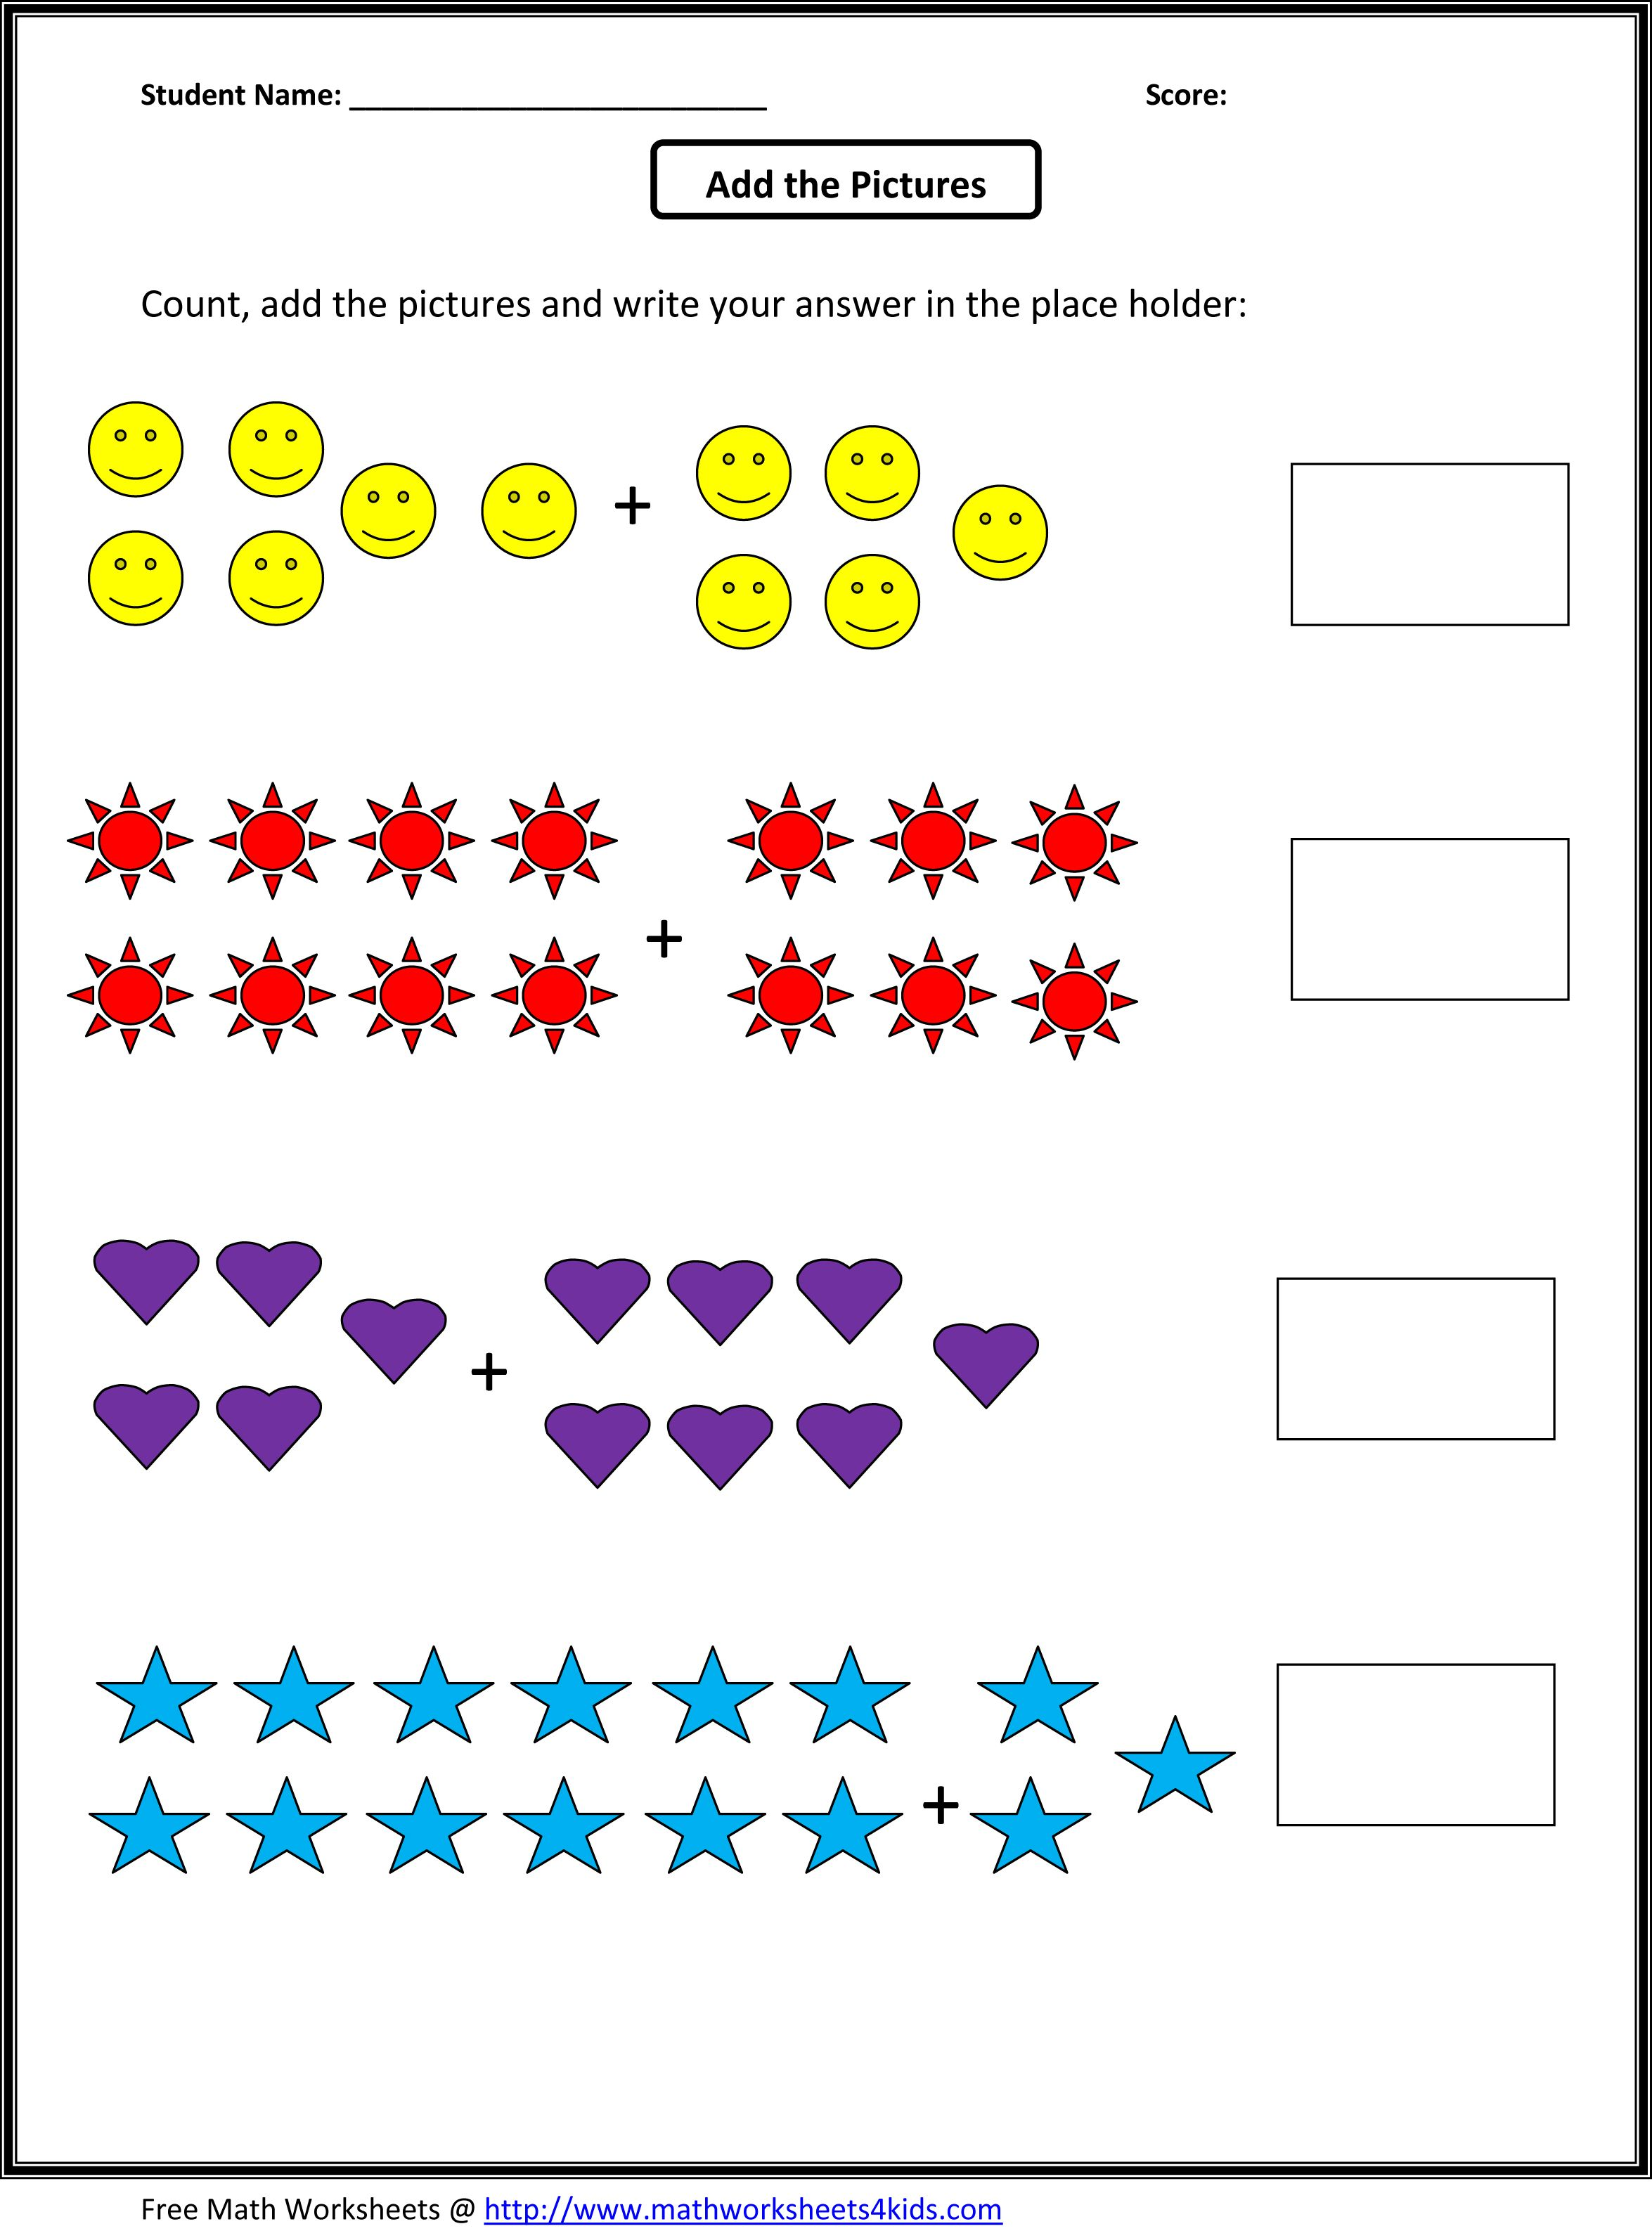 Worksheets Science Worksheets 1st Grade grade 1 addition math worksheets first worksheets